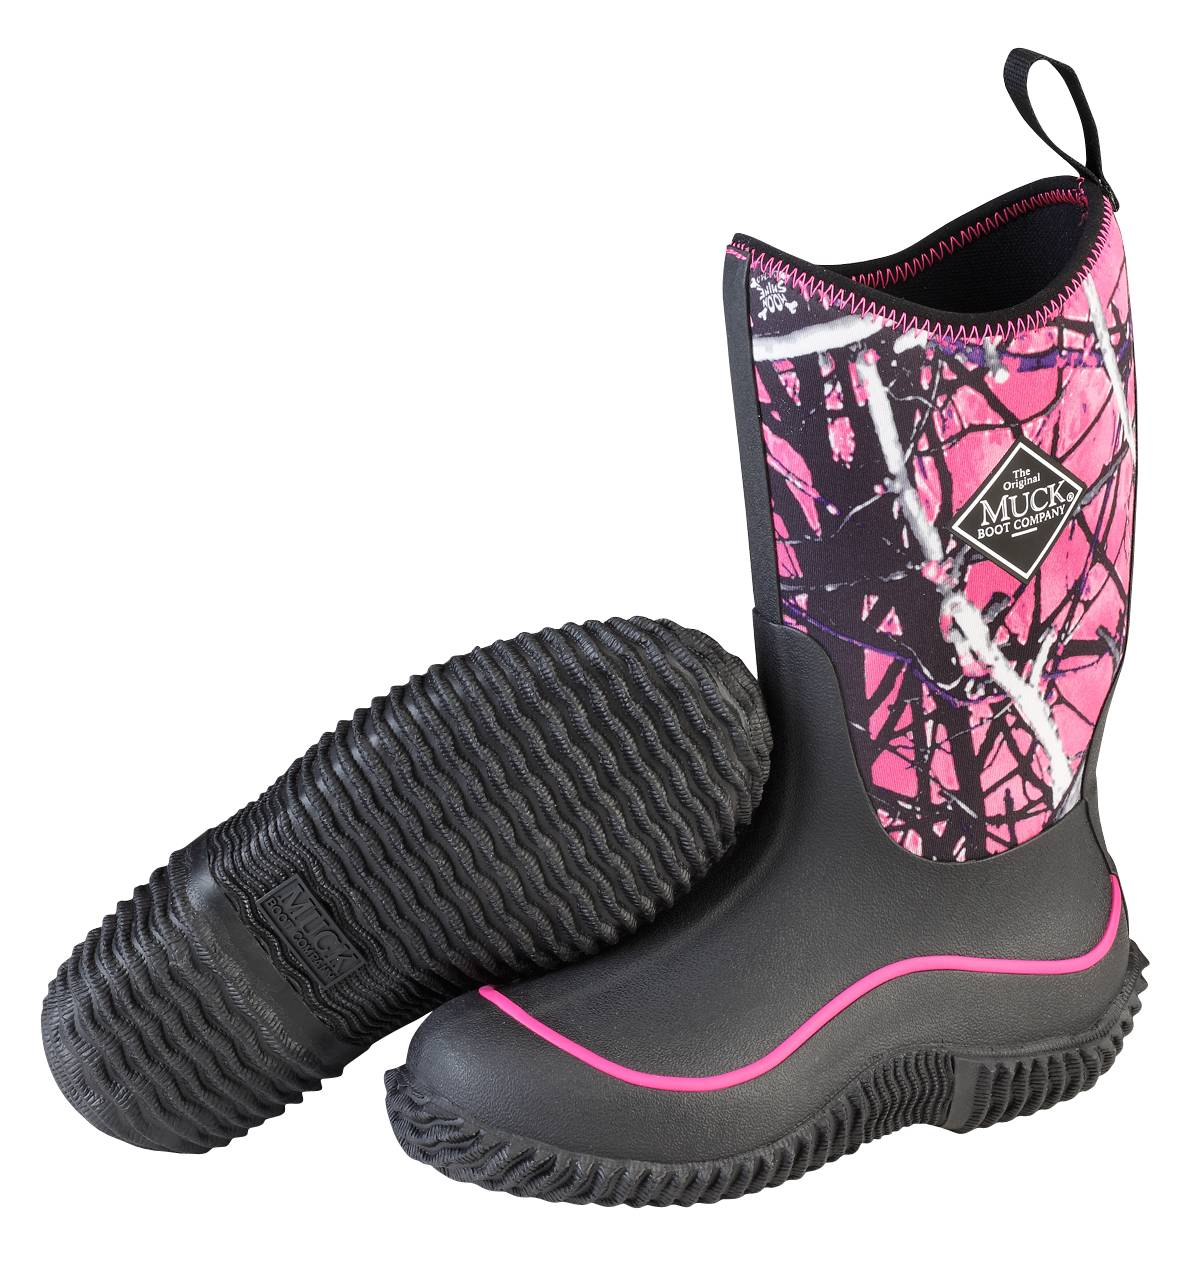 Muck Boots Hale Boots - Youth - Black Muddy Girl